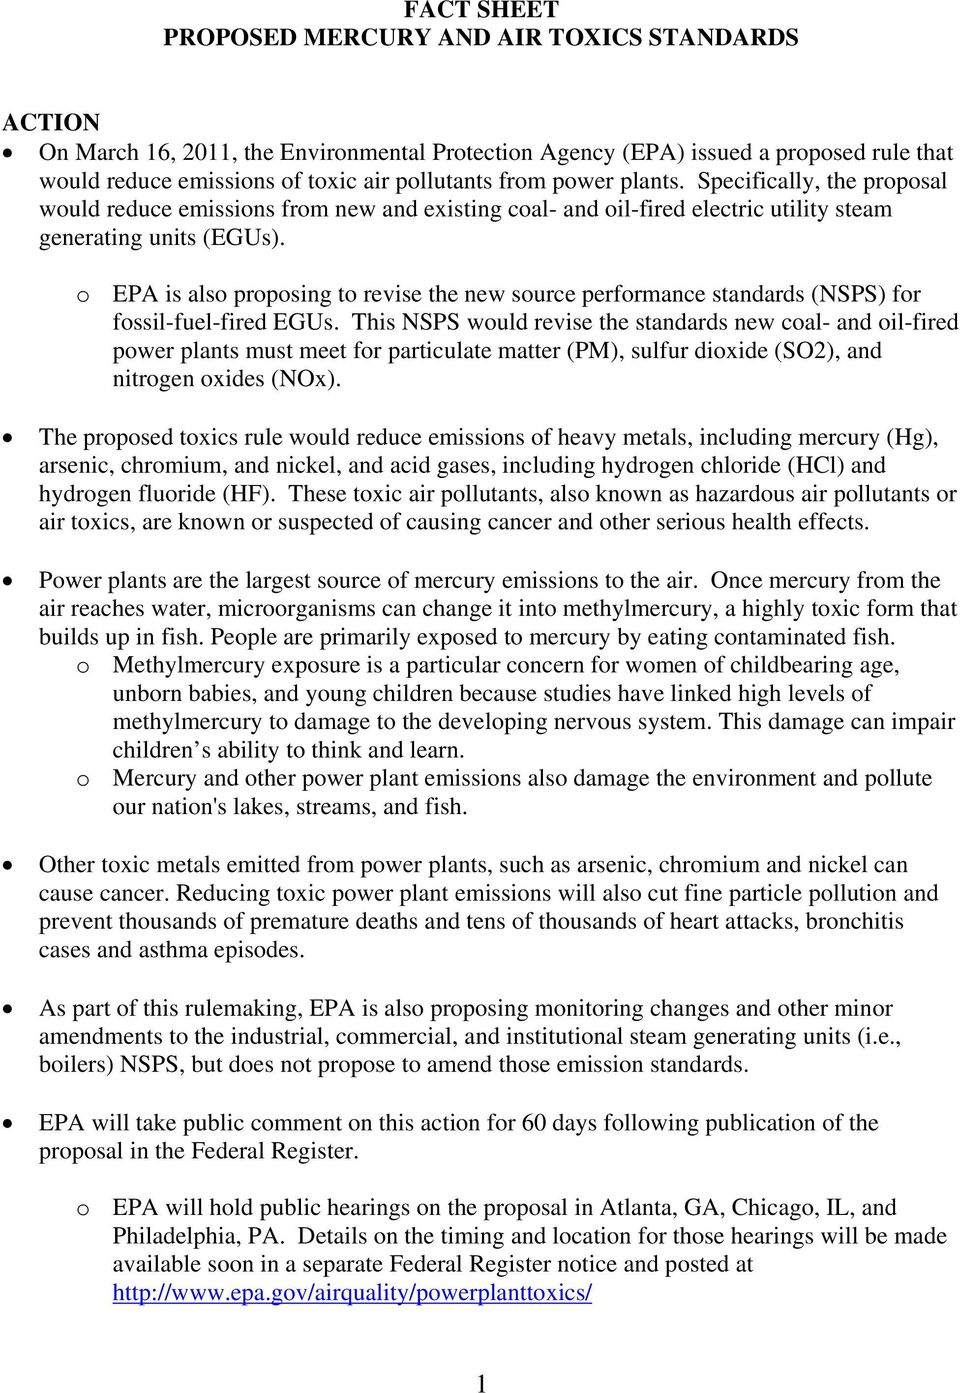 o EPA is also proposing to revise the new source performance standards (NSPS) for fossil-fuel-fired EGUs.